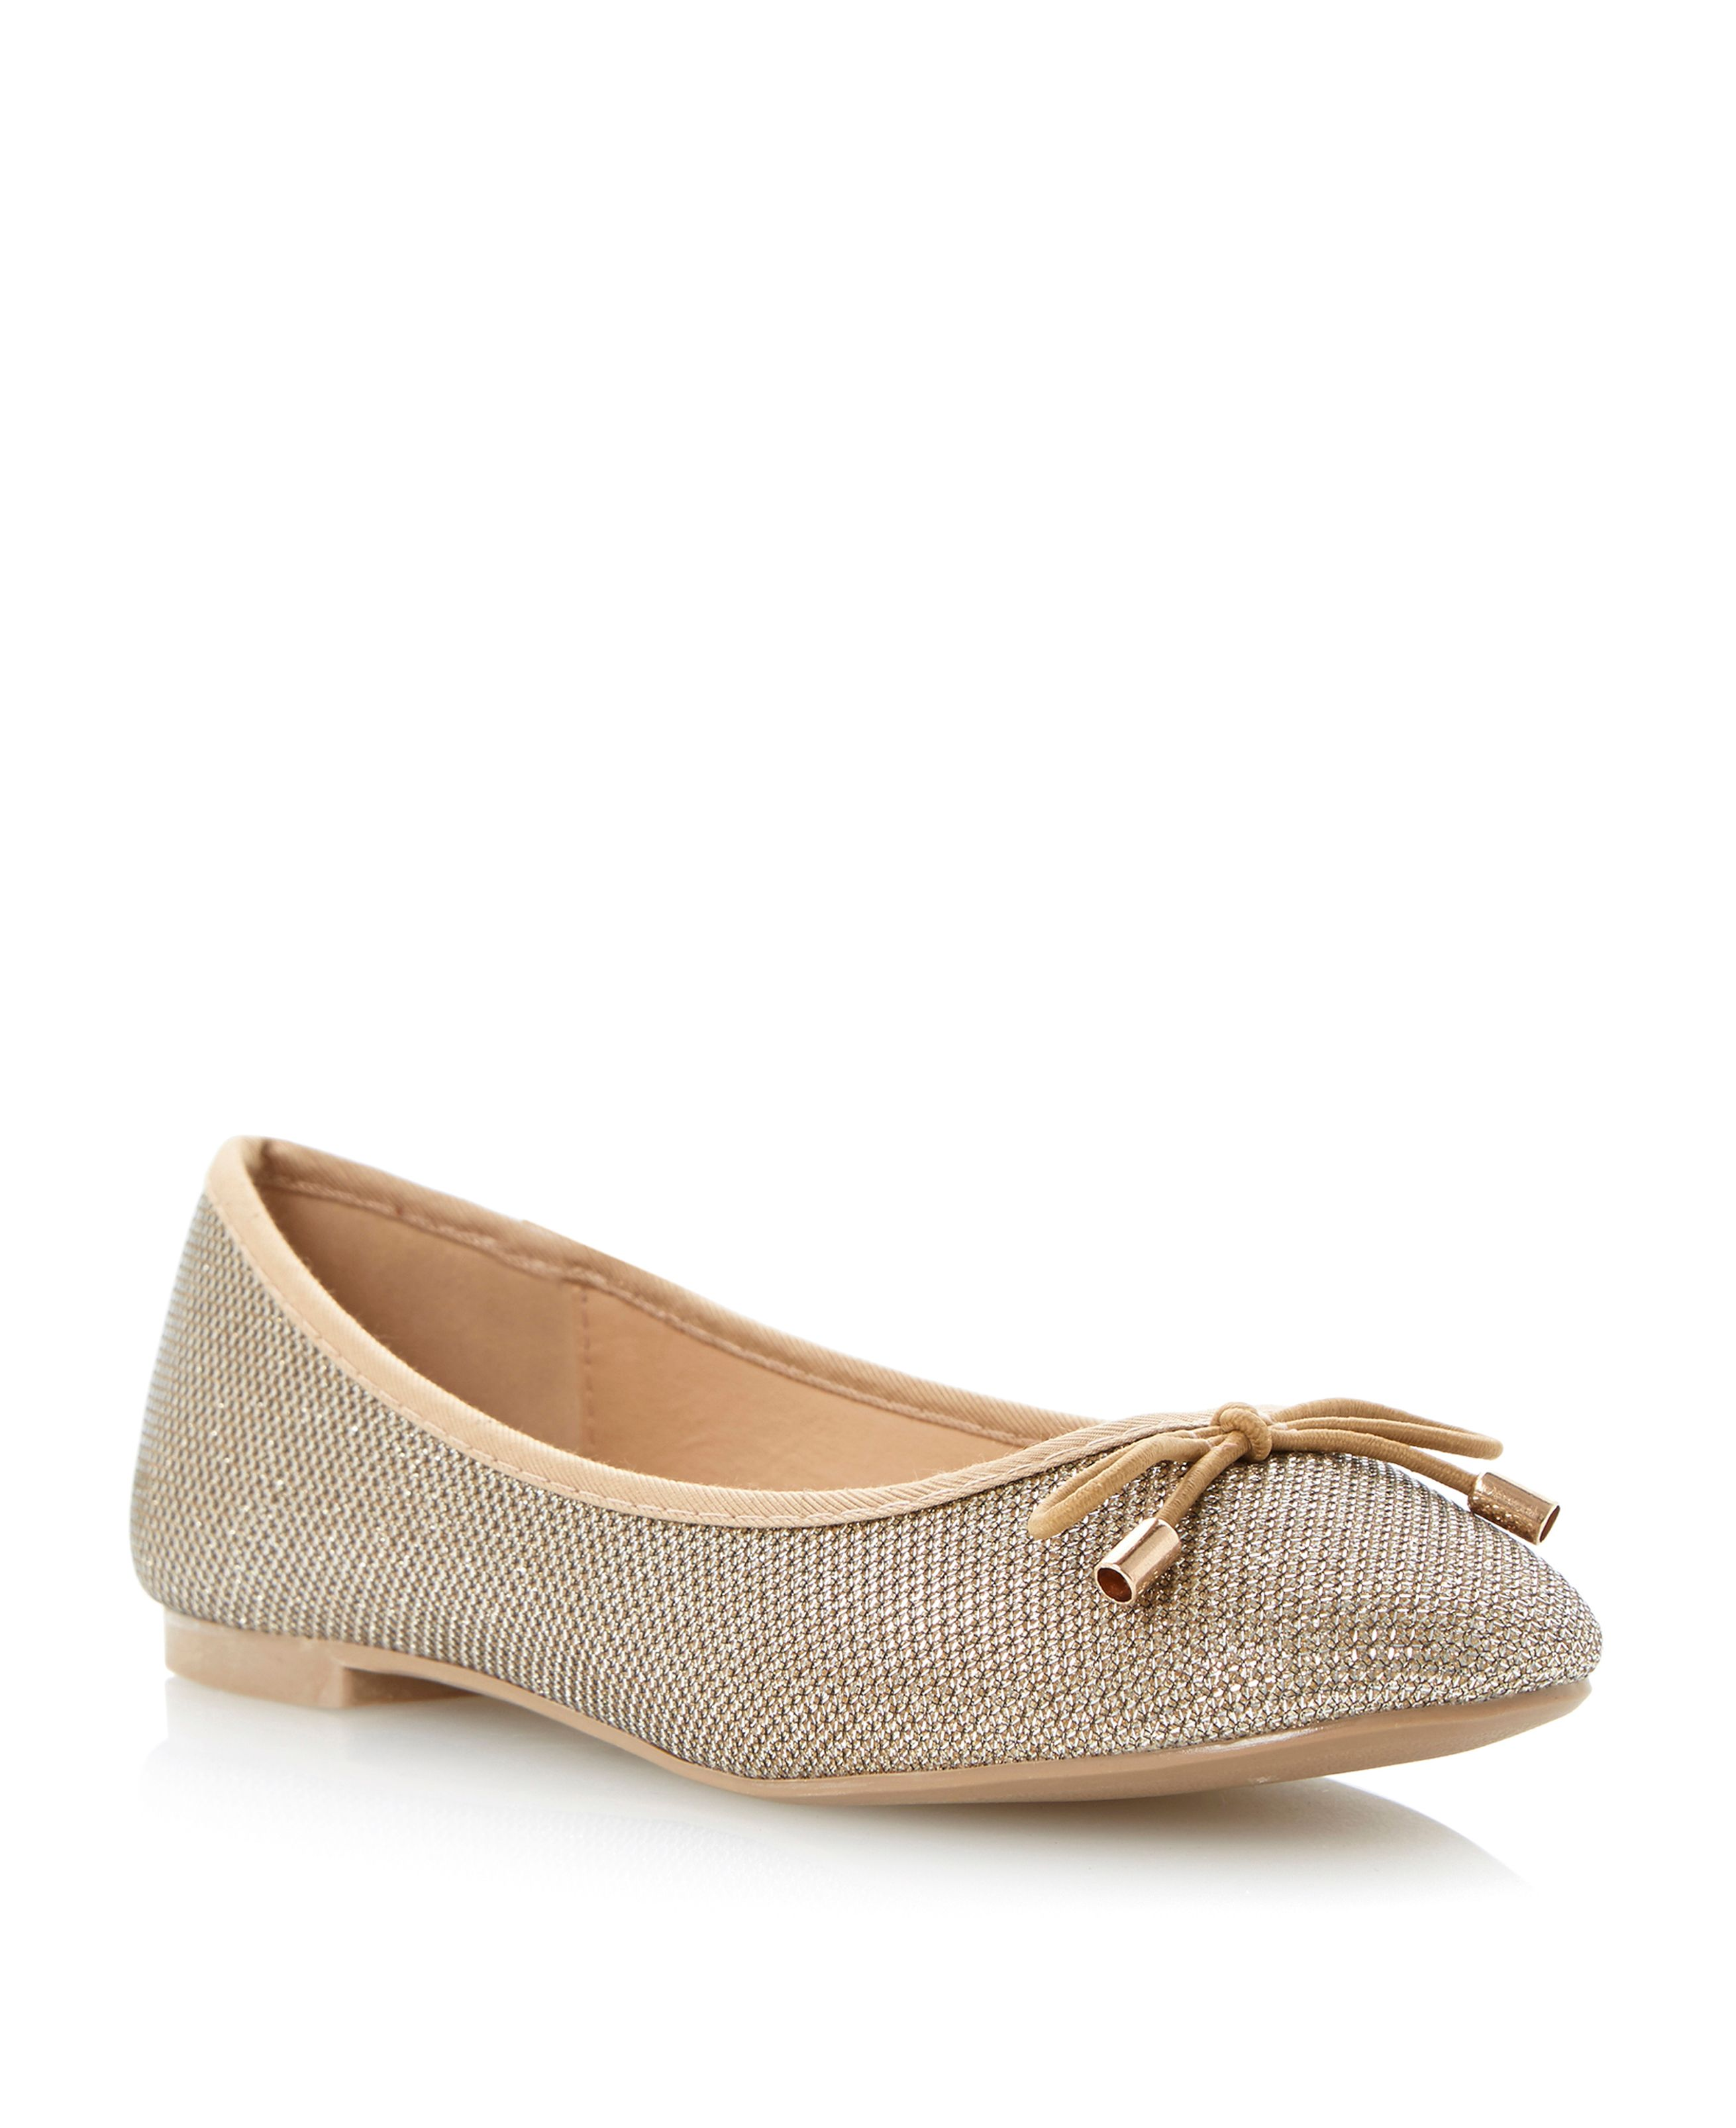 Molly lurex ballerina pumps